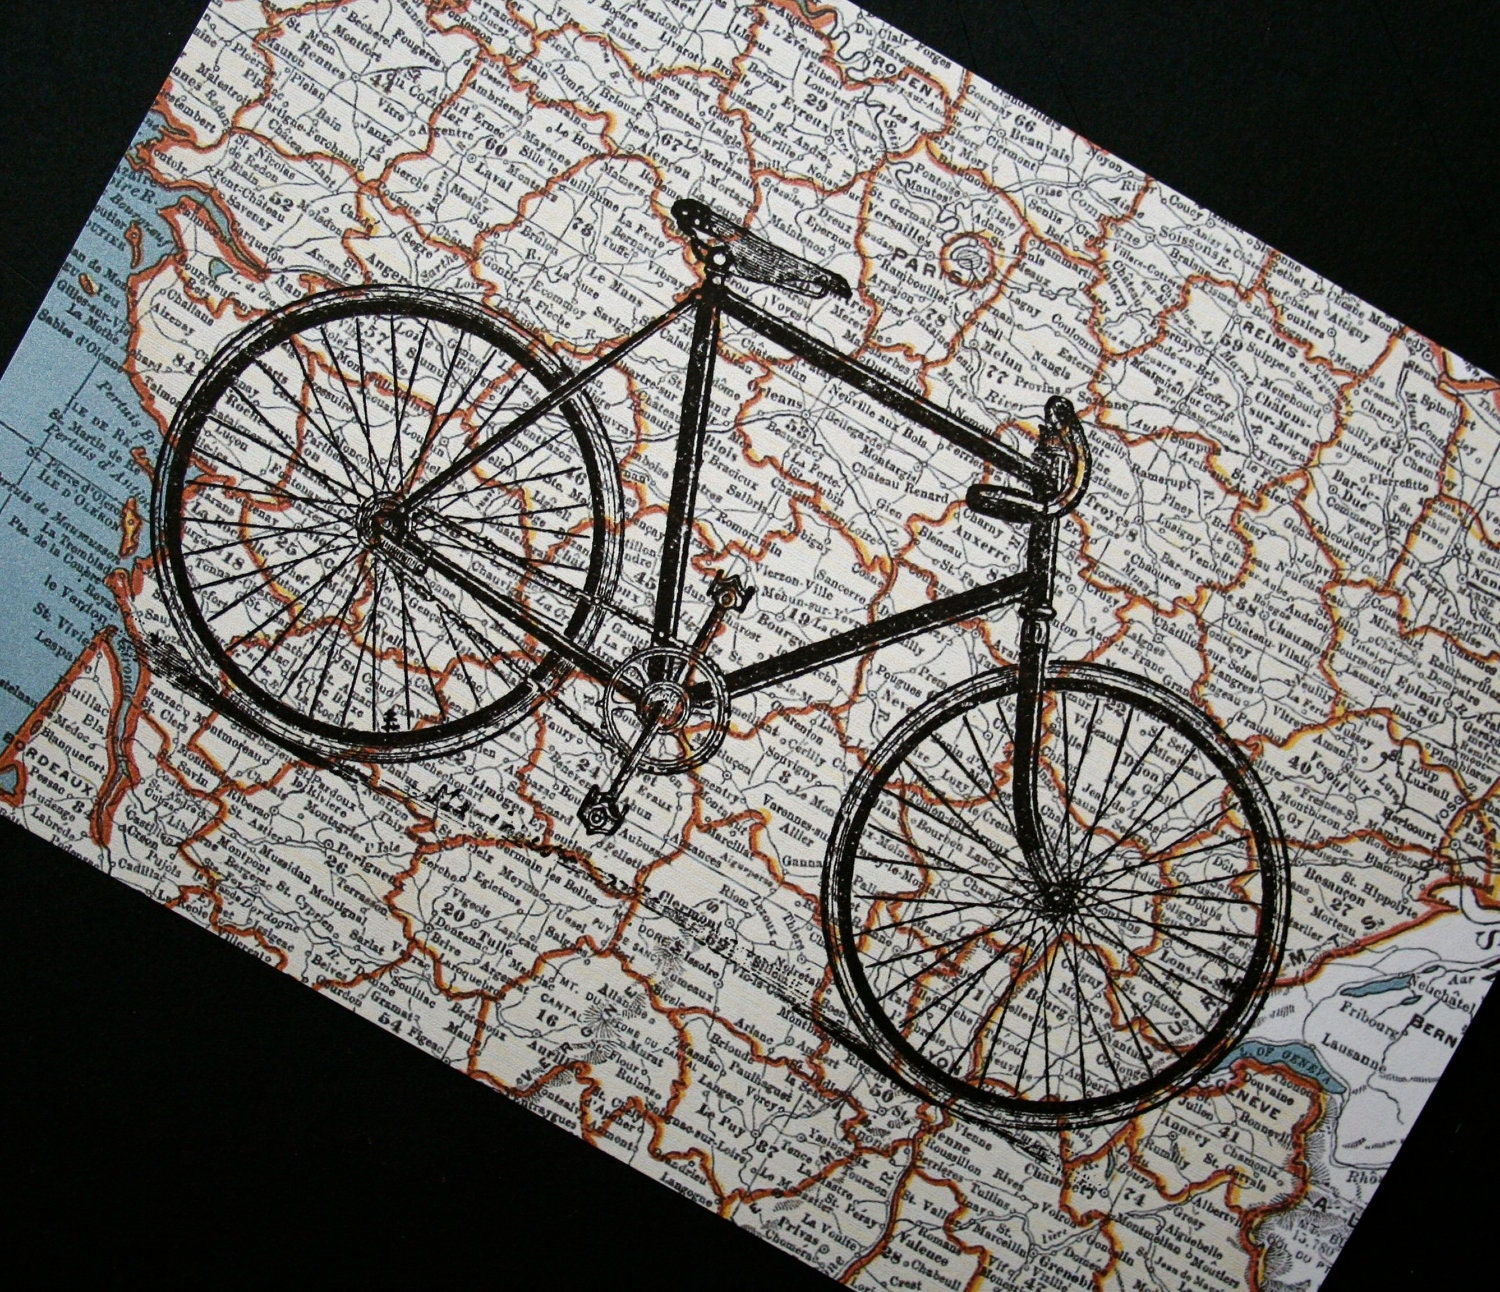 Tour De France Bicycle Print by CrowBiz